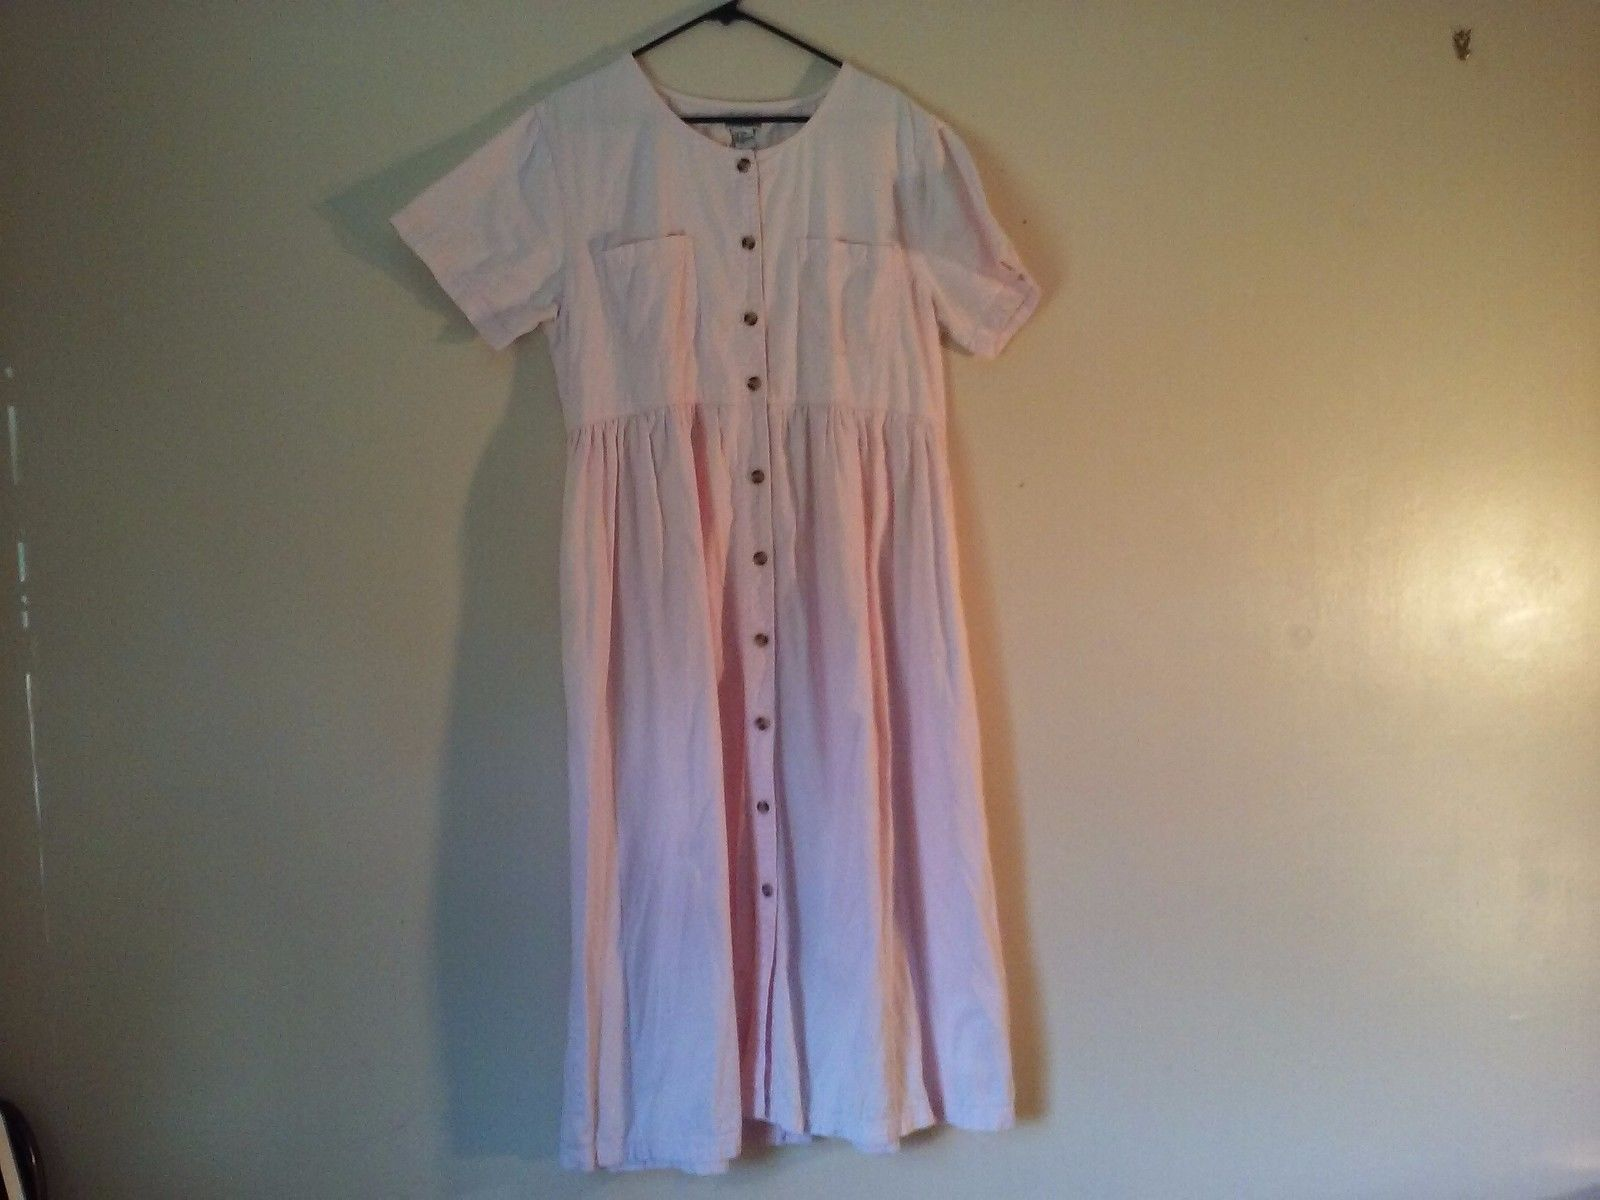 Adorable Great Condition Fads 100% Cotton XL Pink Dress 2 Pockets Minor Stain